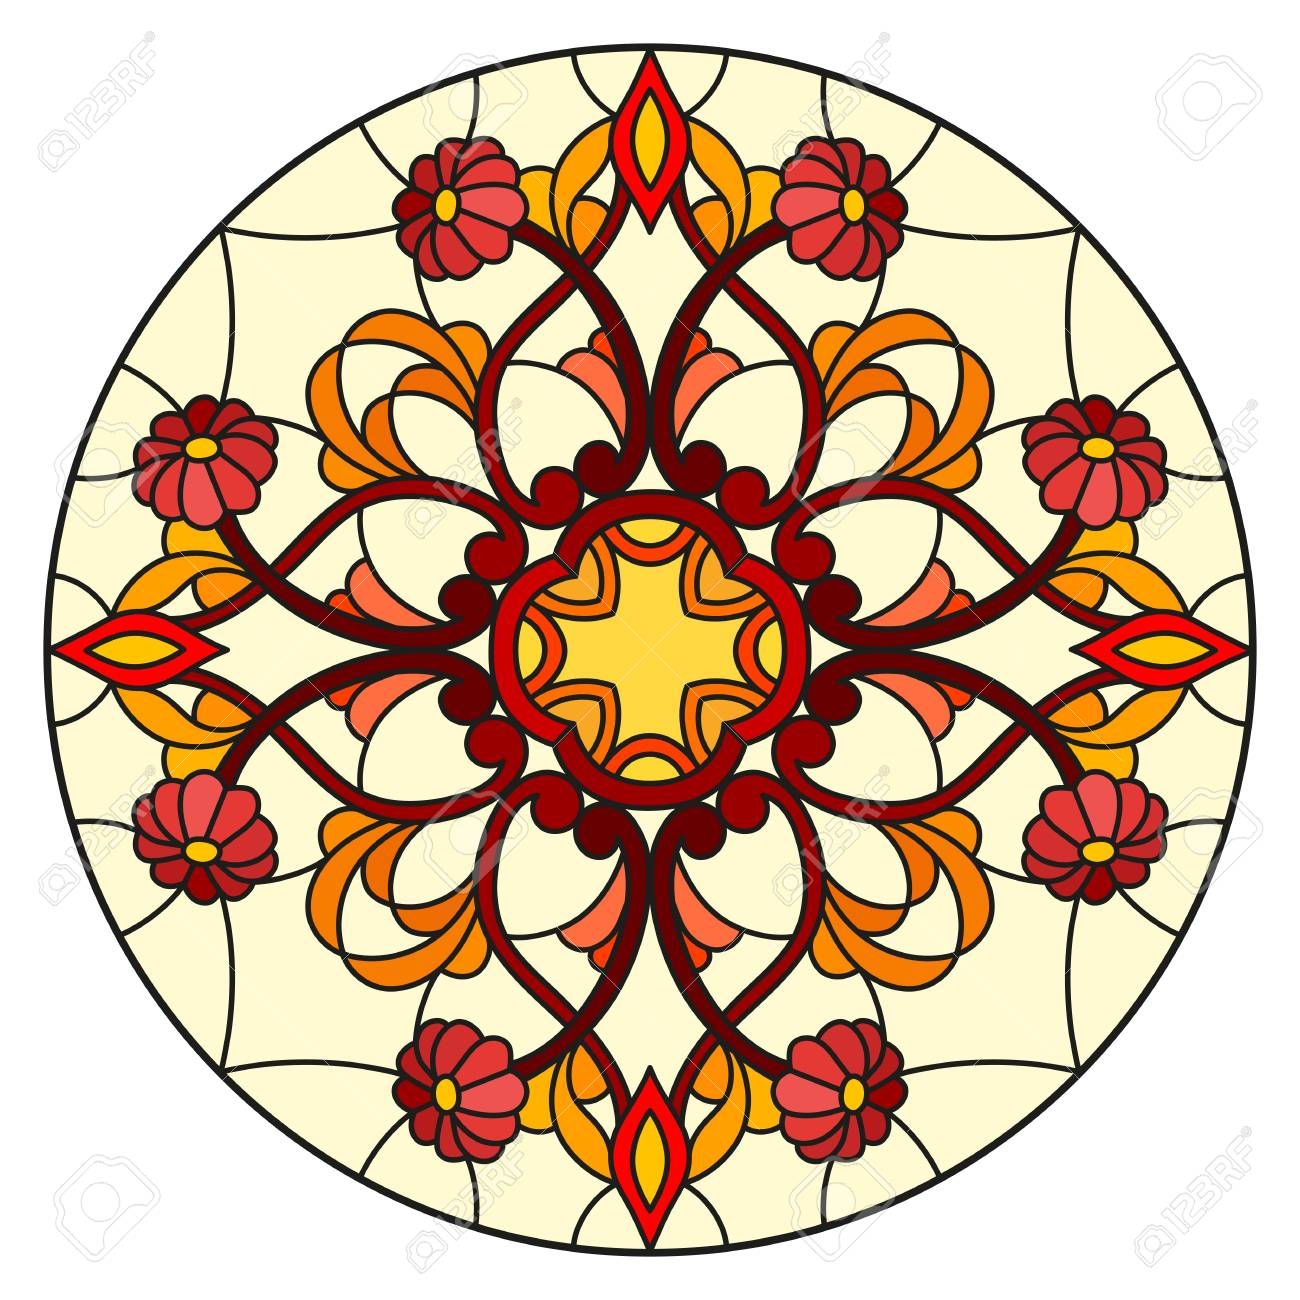 Illustration in stained glass style with abstract flowers, leaves and swirls, circular image on white background - 97576044